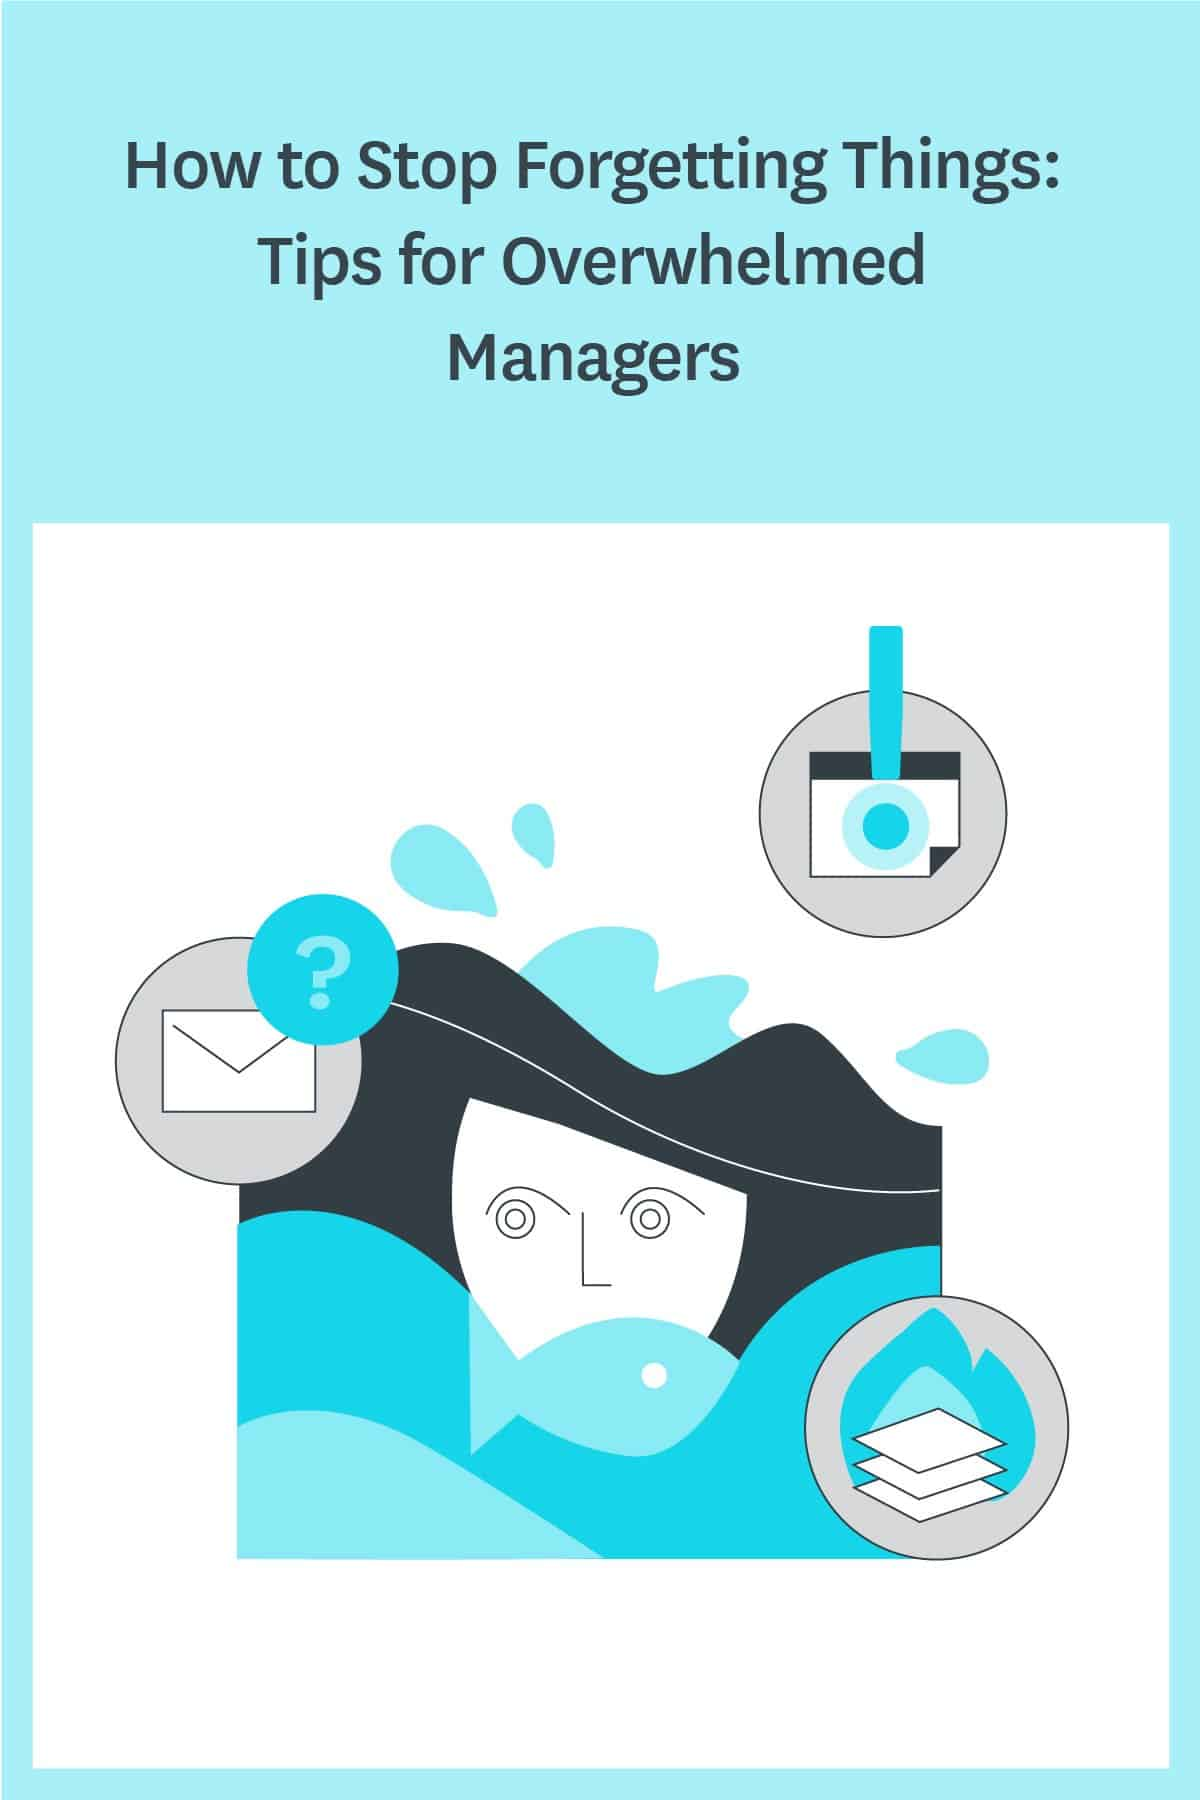 Feeling overwhelmed? Forgetting things? These tips for managers will help you get back on track and manage your team and projects more effectively. #managertips #tipsformanagers